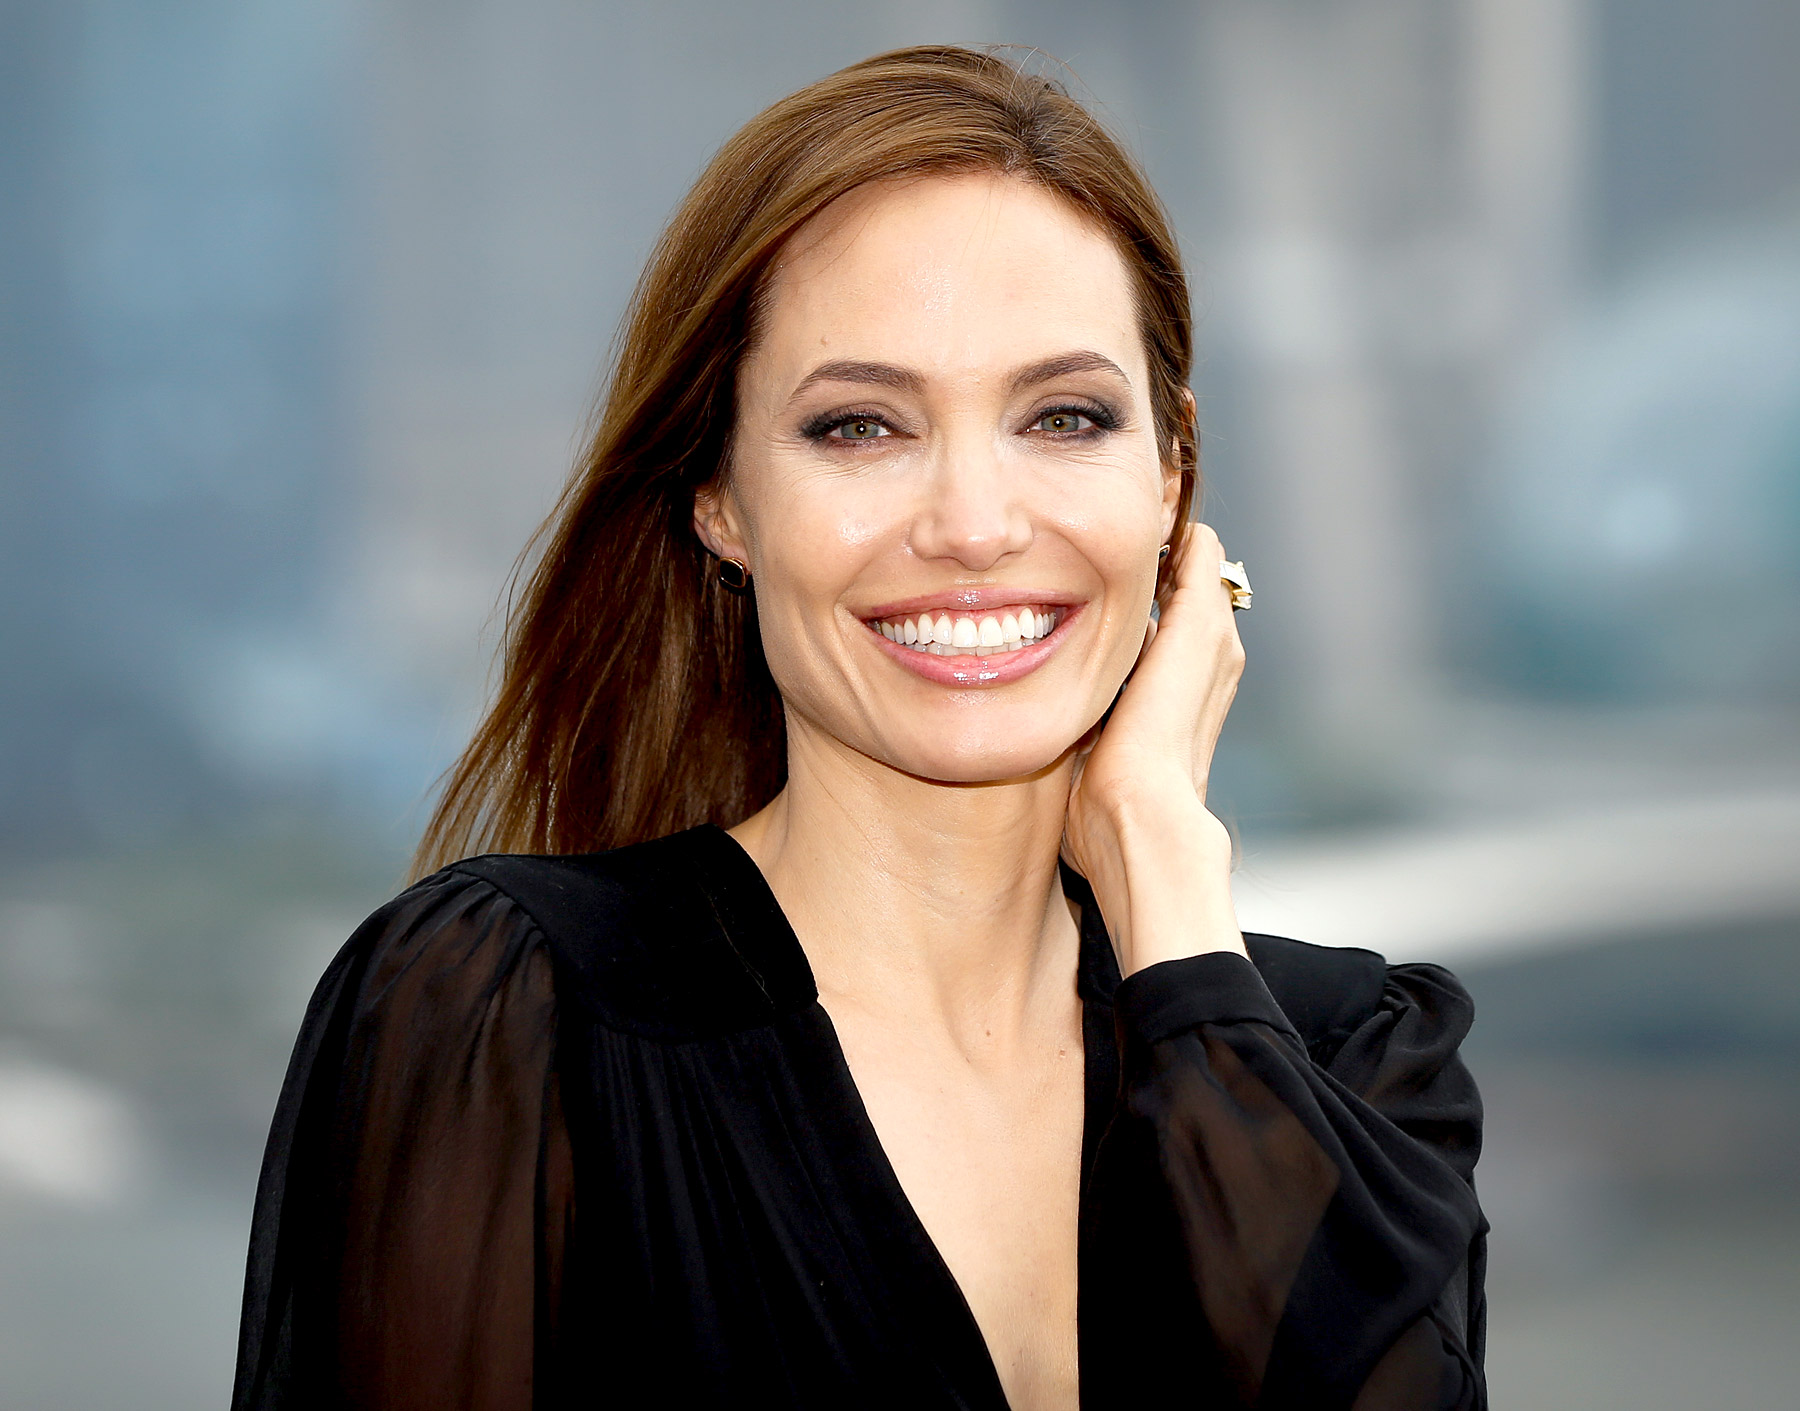 Angelina Jolie Smile 520.75 Kb